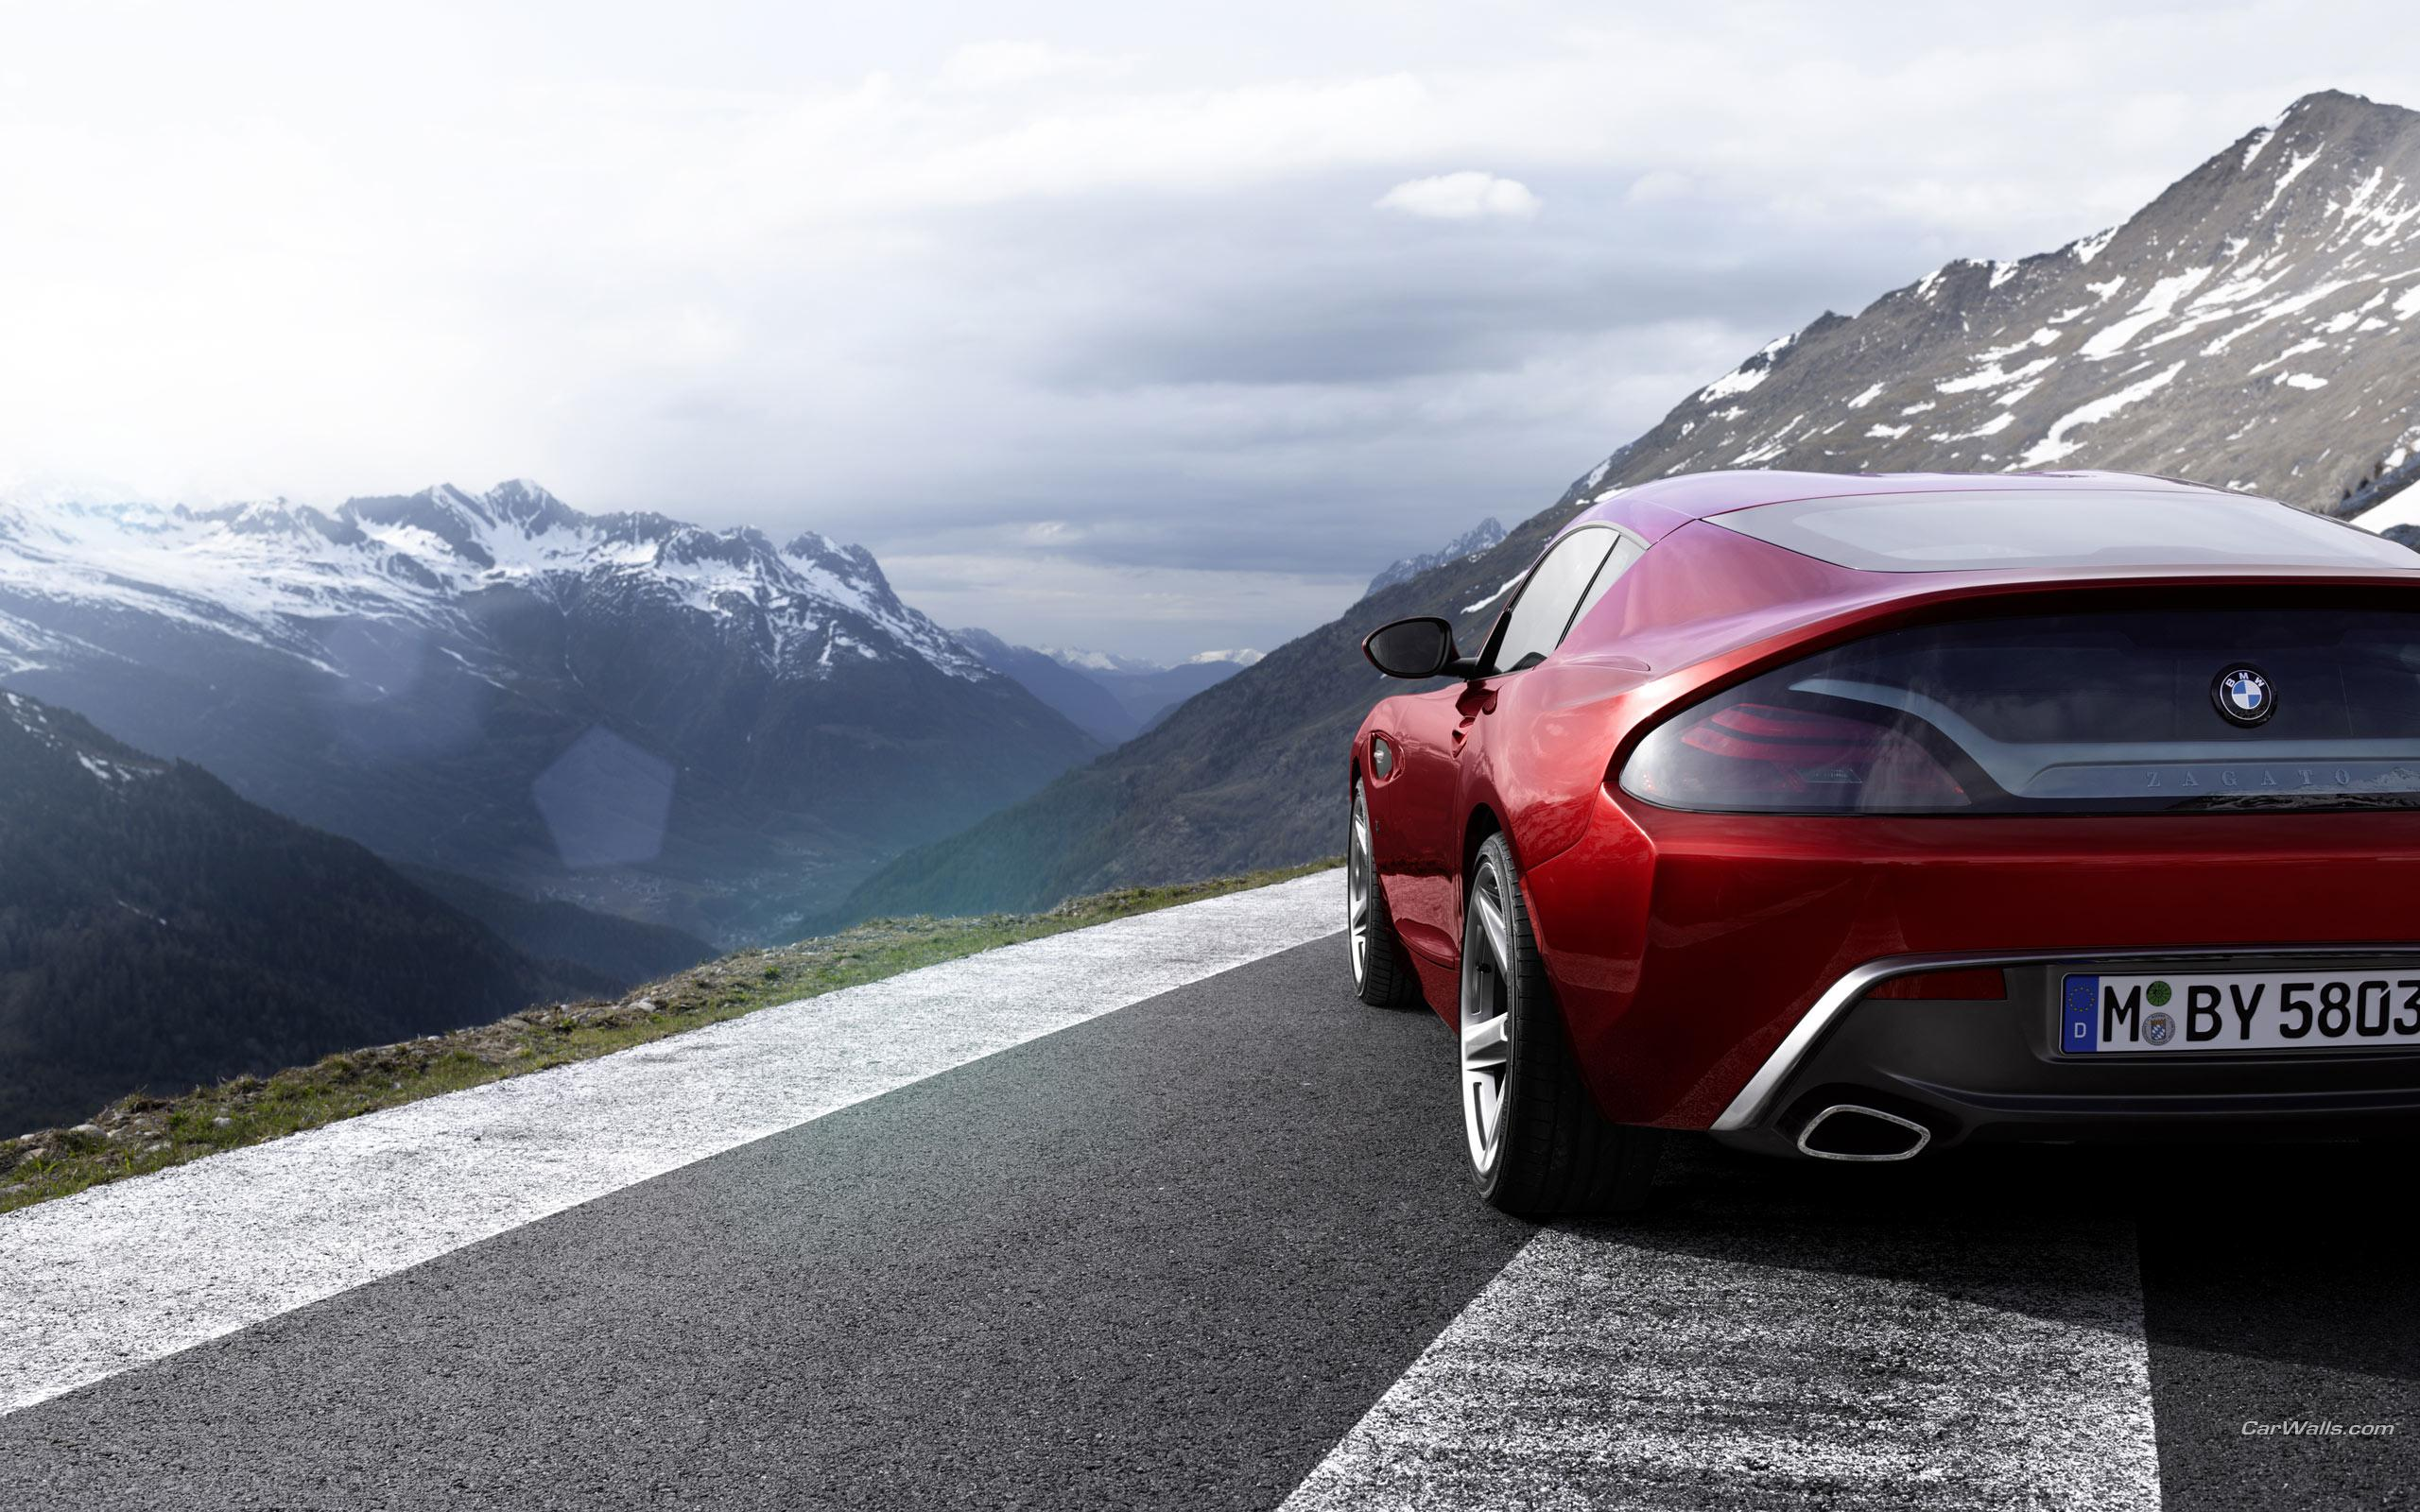 2560x1600 - BMW Zagato Coupe Wallpapers 30